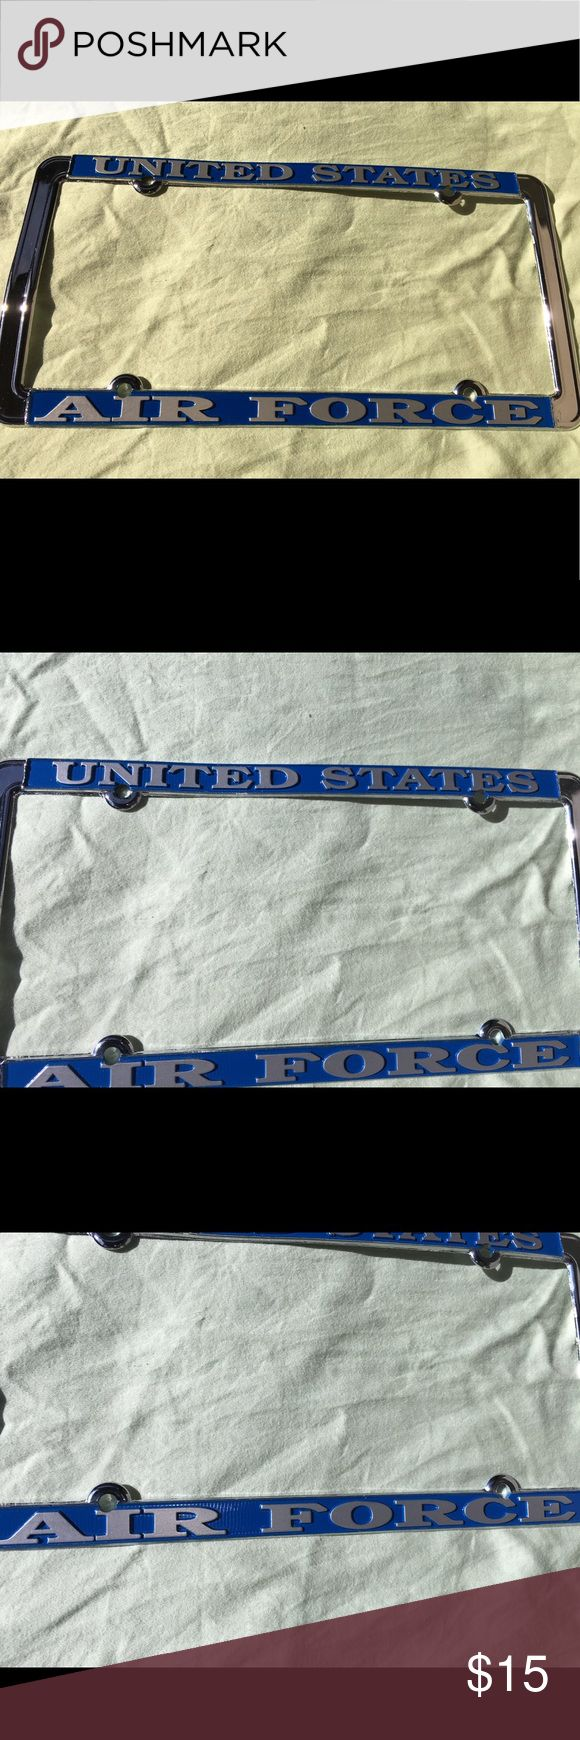 United States Air Force metal license plate frame Thank you for viewing my listing, for sale is a brand new in the package, metal license plate frame, United States Air Force. If you have any questions or would like additional photos please feel free to ask. USA Accessories